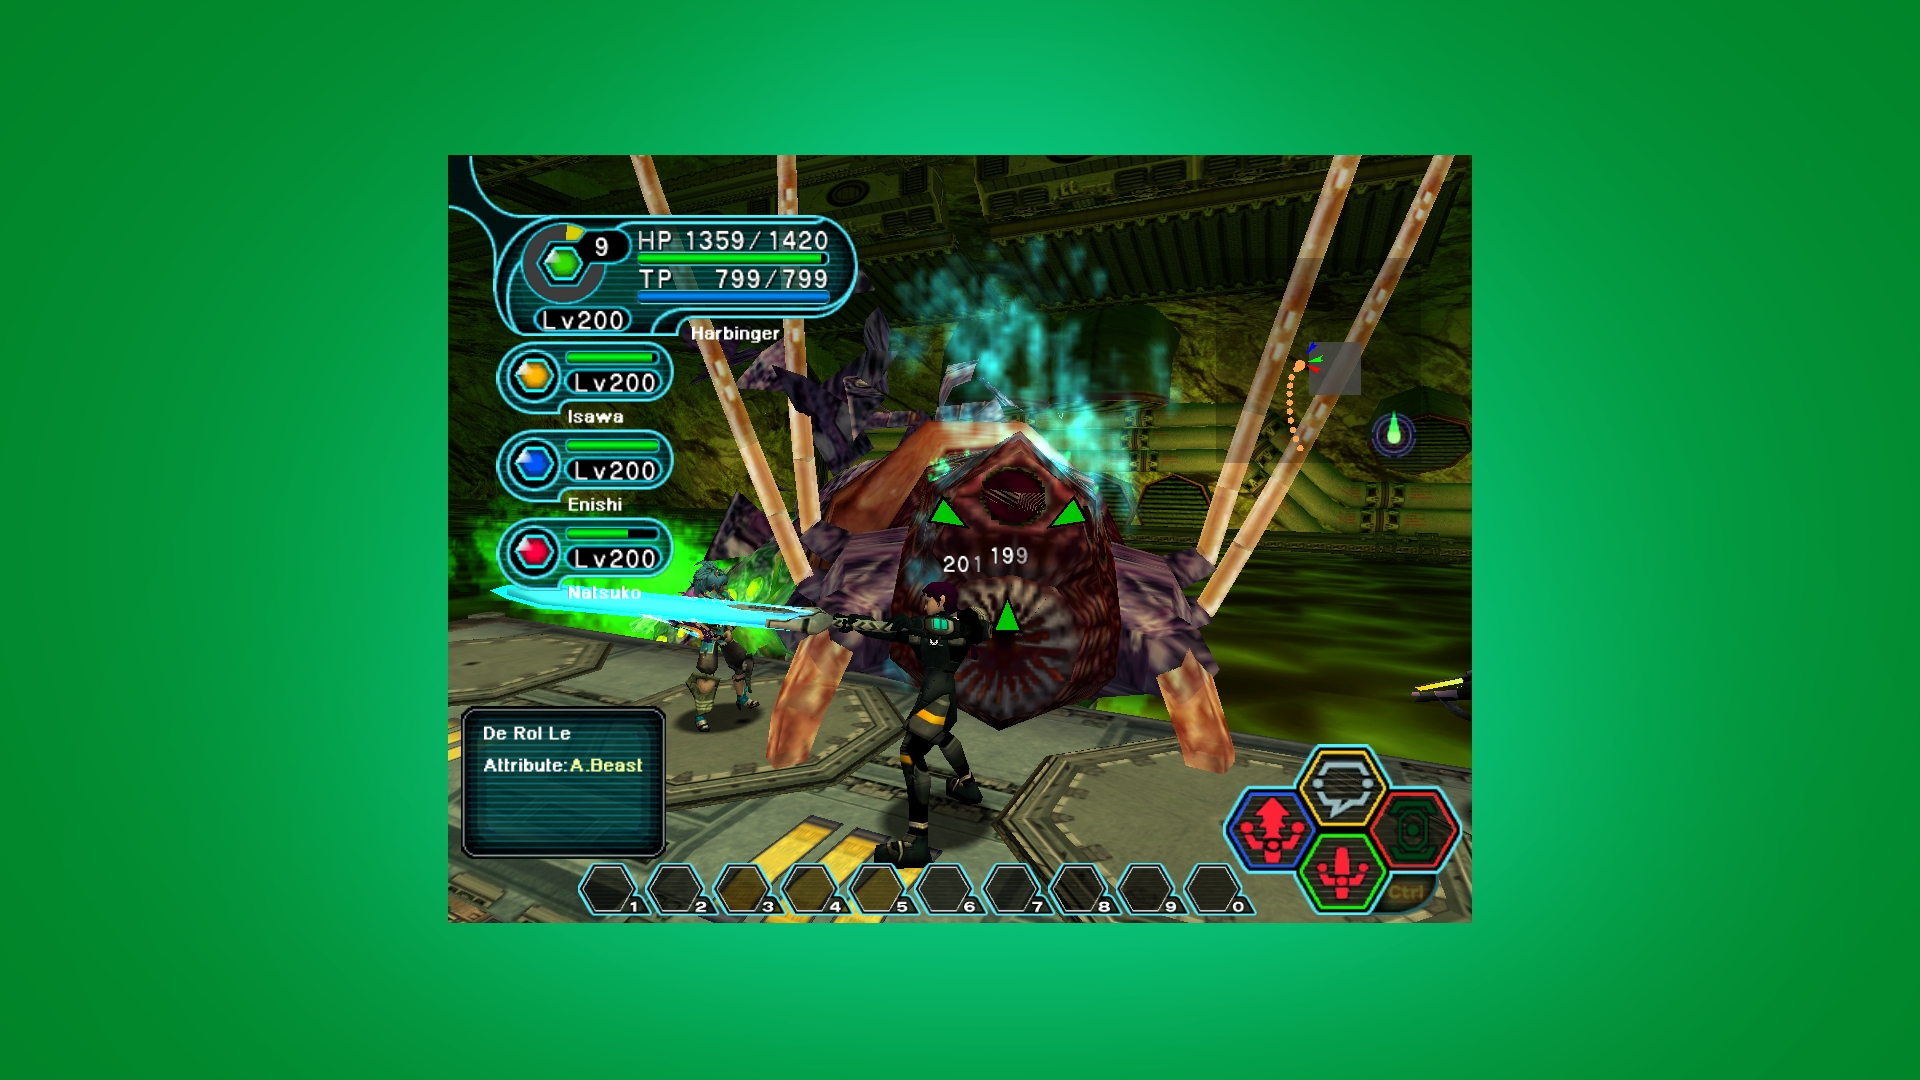 Phantasy Star Online gameplay of fighting a huge boss with four players